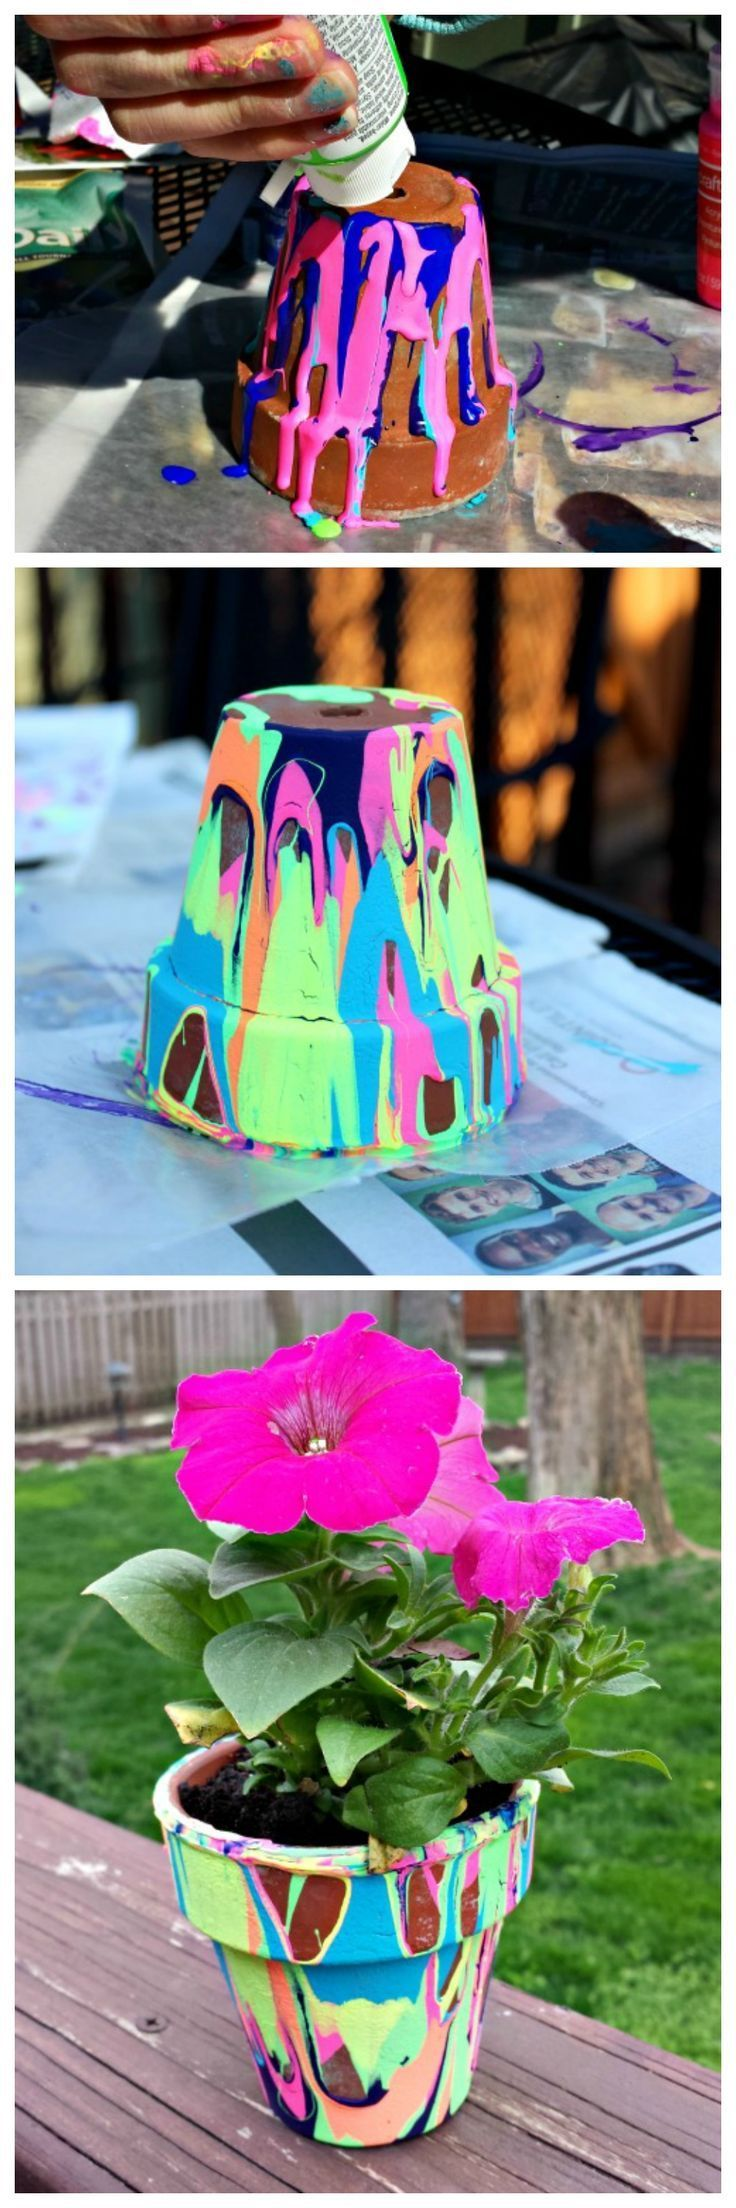 Easy DIY craft for preschool, elementary & teens! Gift idea for teacher appreciation or Mother's Day too.